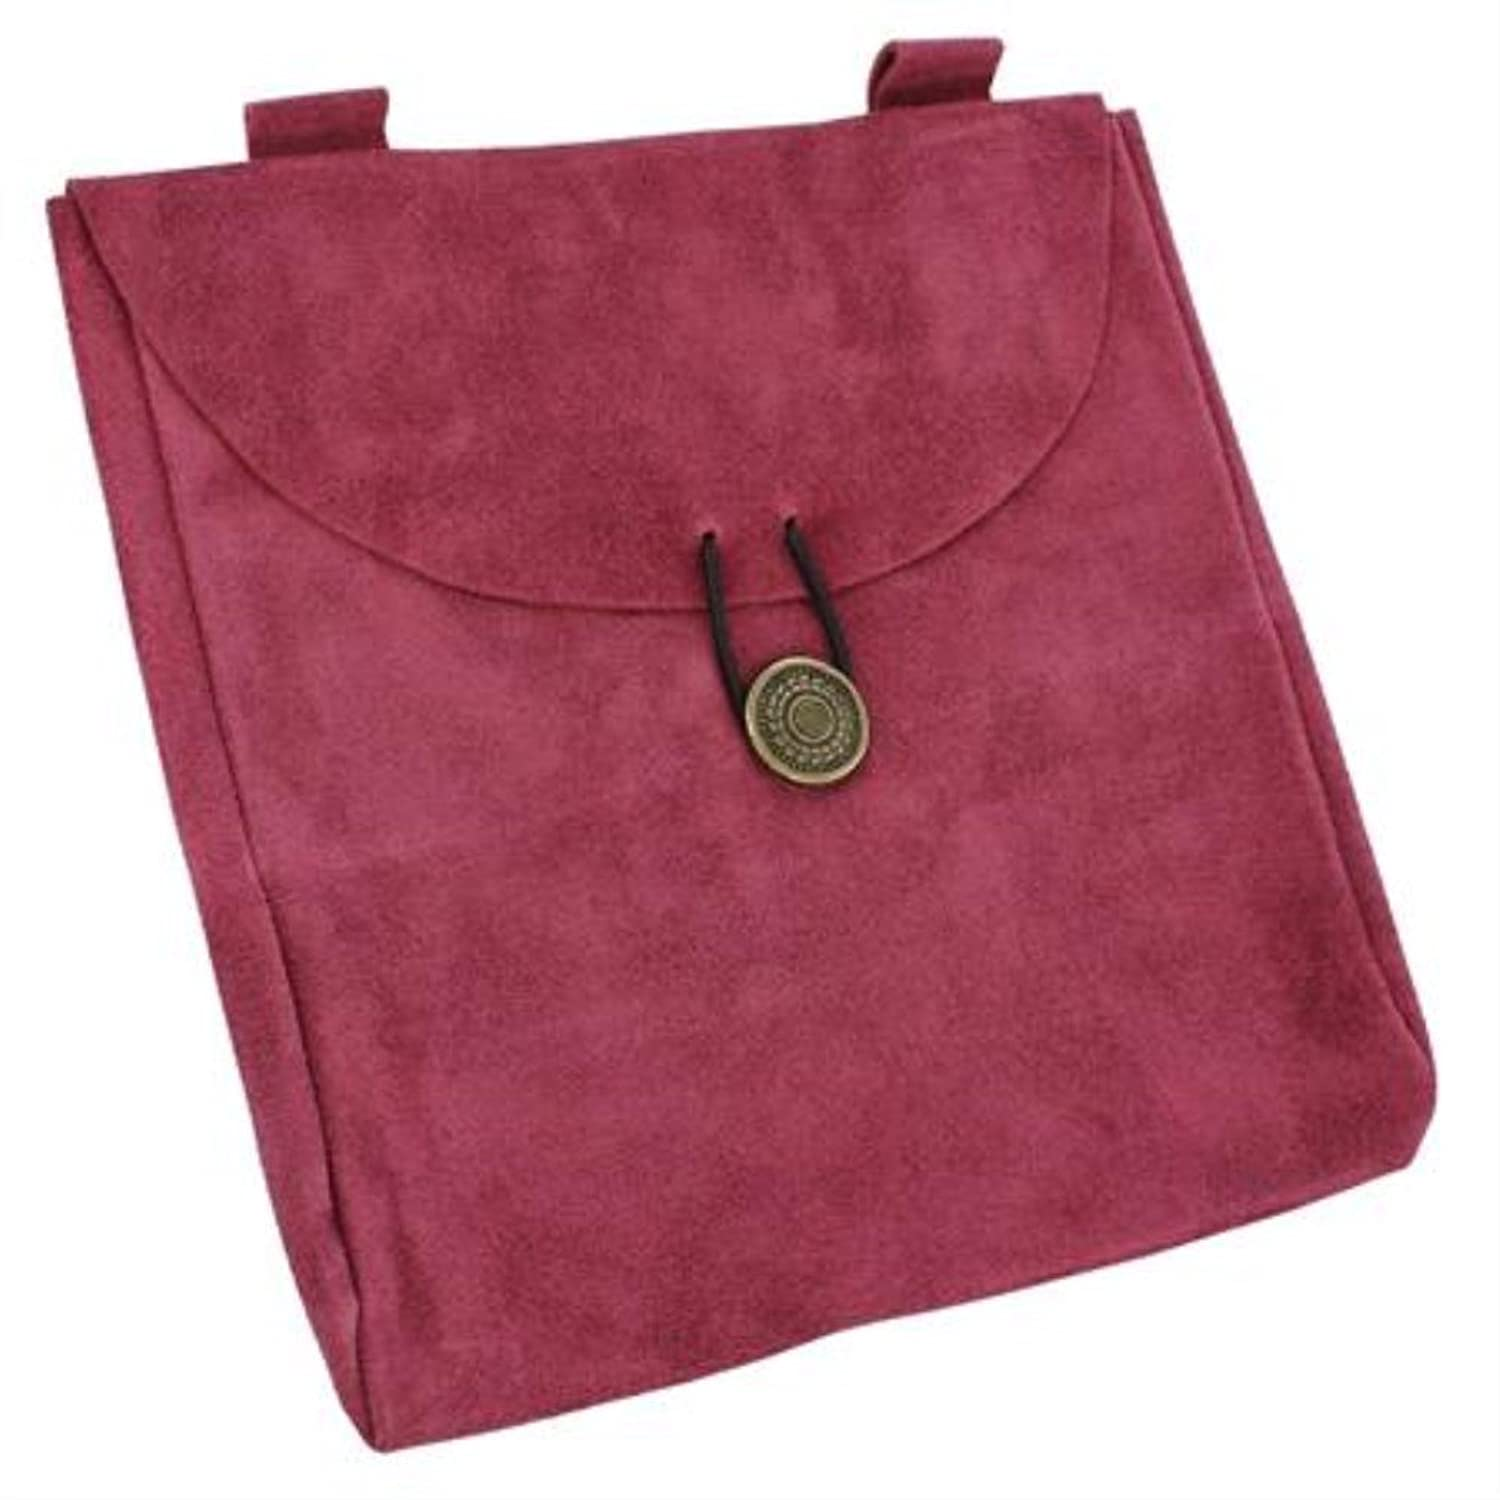 Large Medieval Rose Suede Leather Belt Pouch